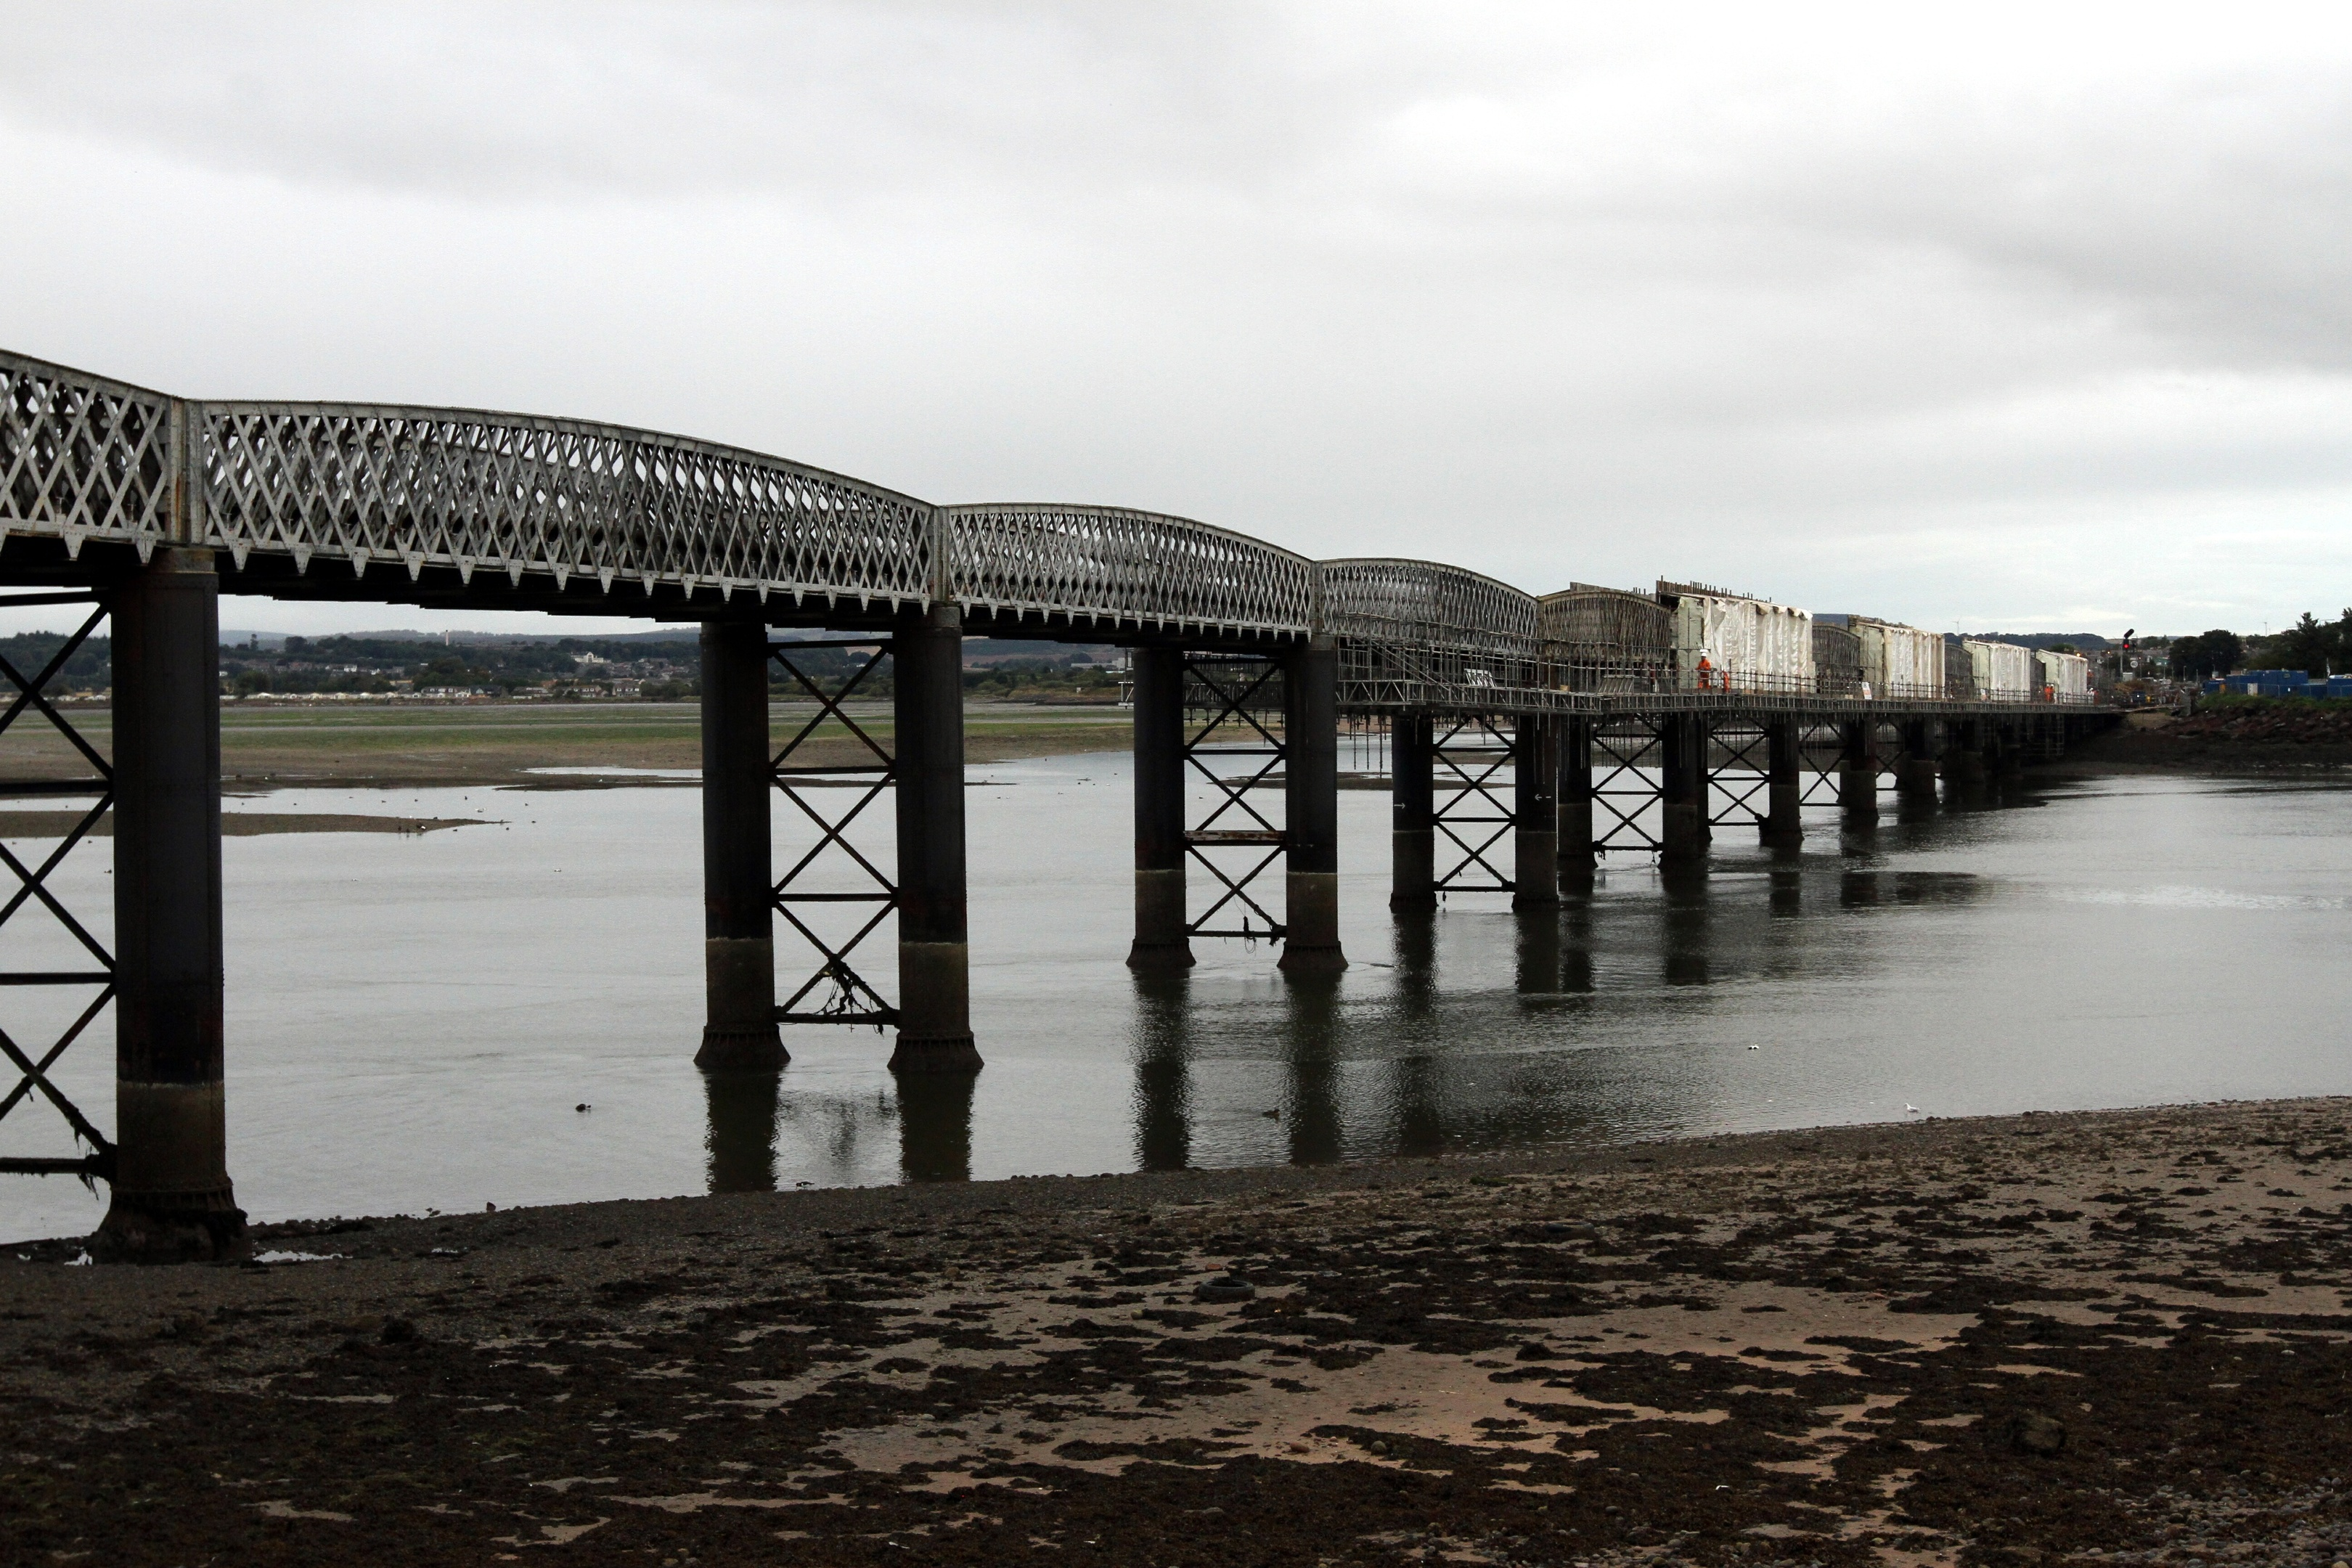 Usan junction sits south of the viaduct over Montrose basis